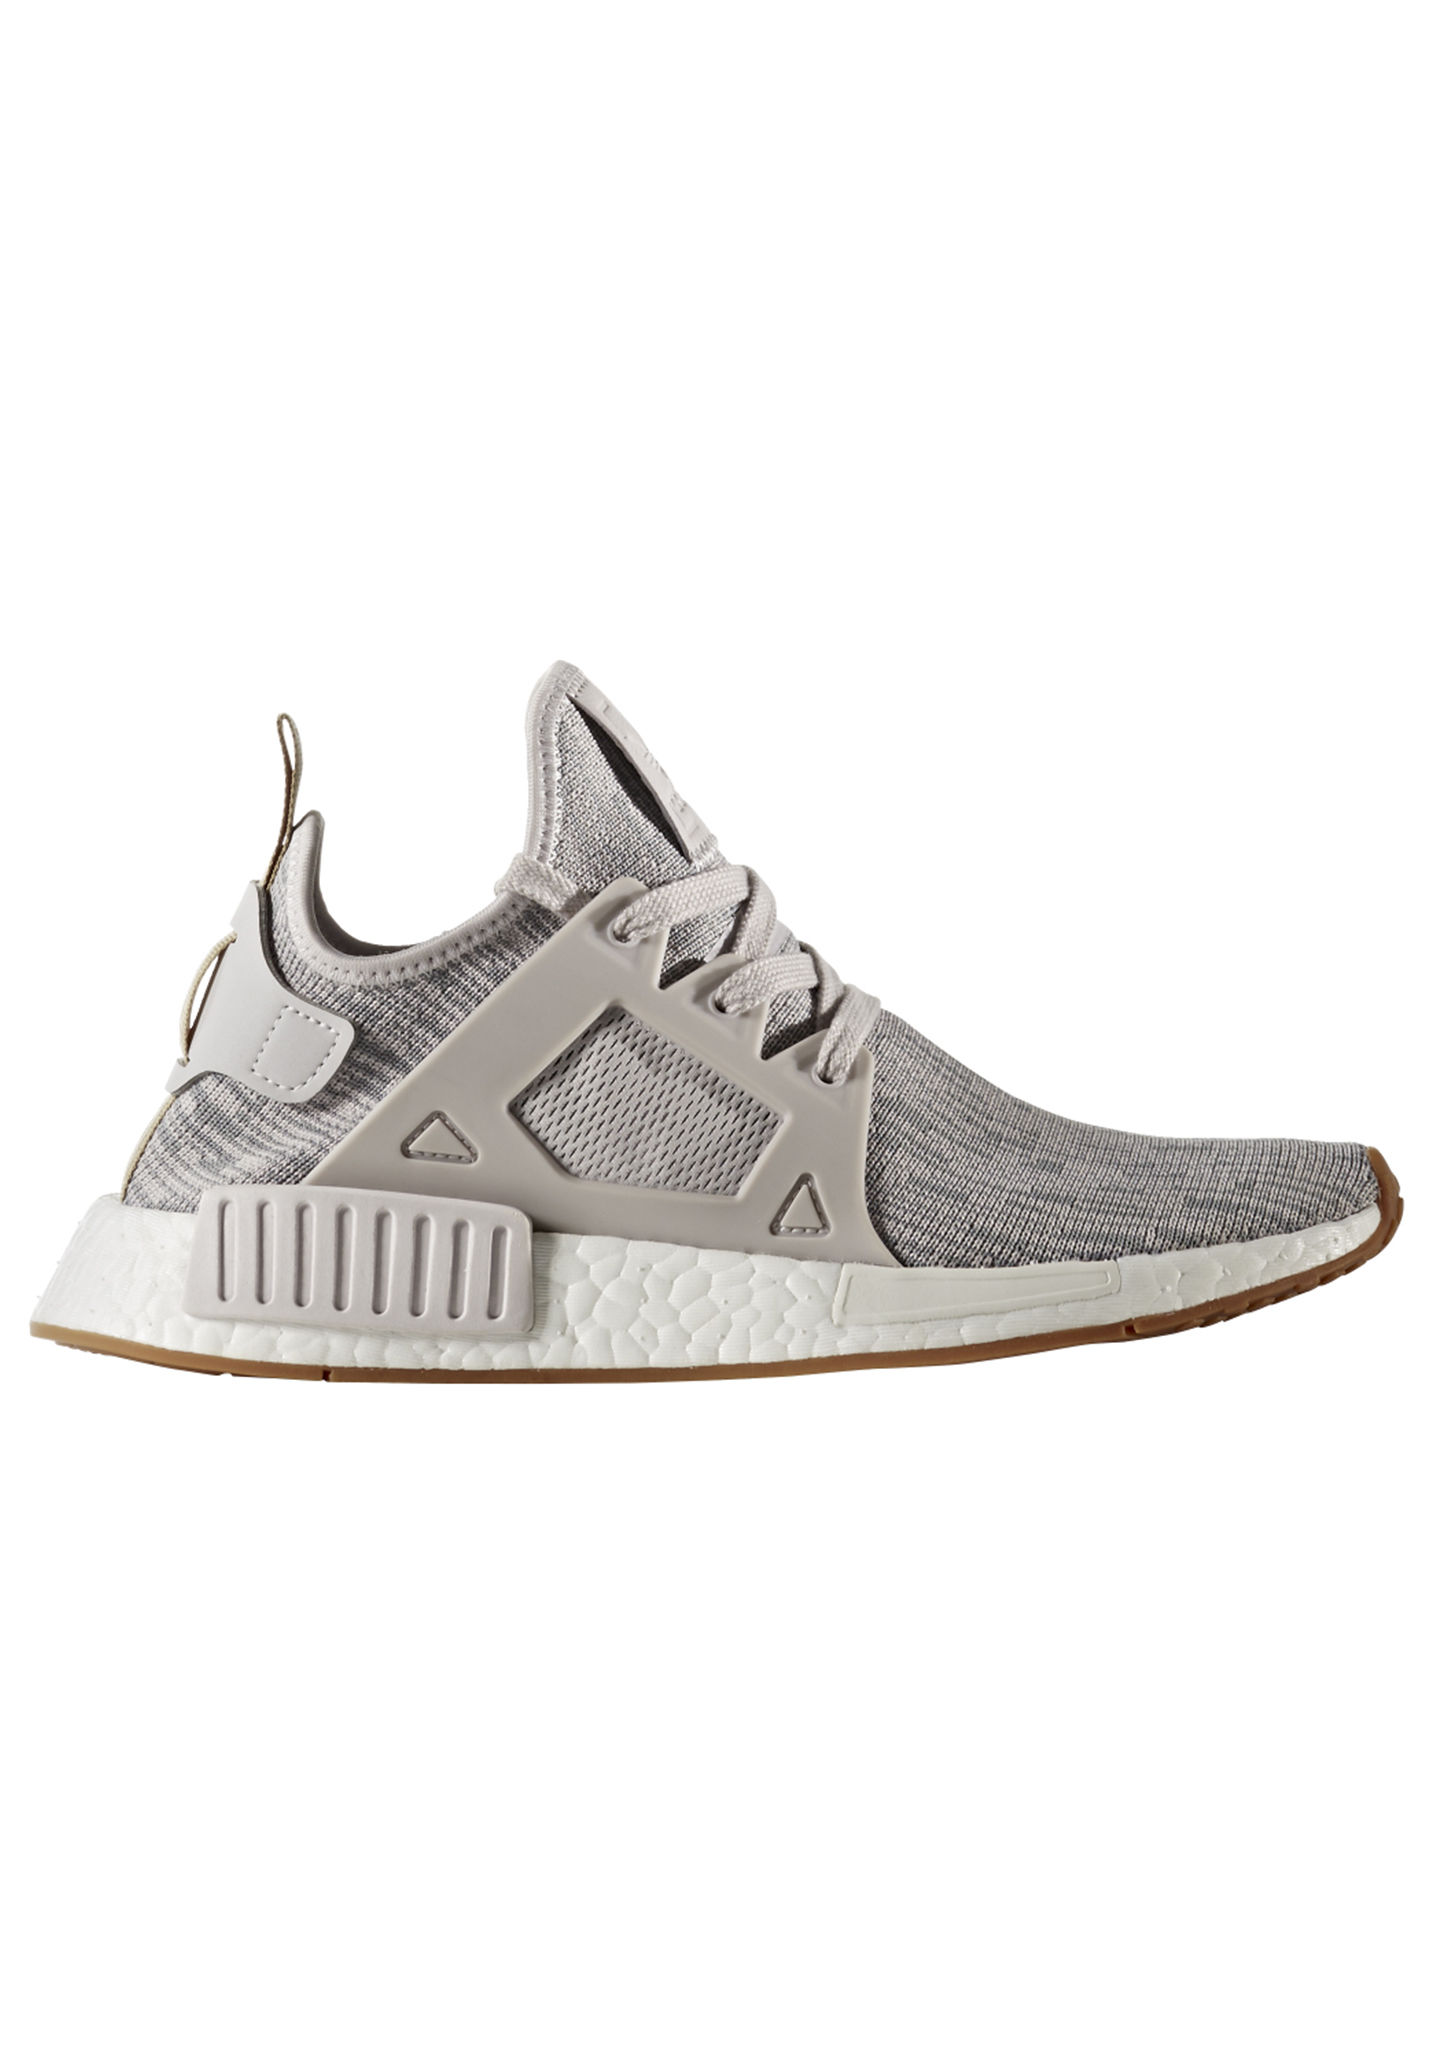 adidas nmd xr1 primeknit sneakers for women grey planet sports